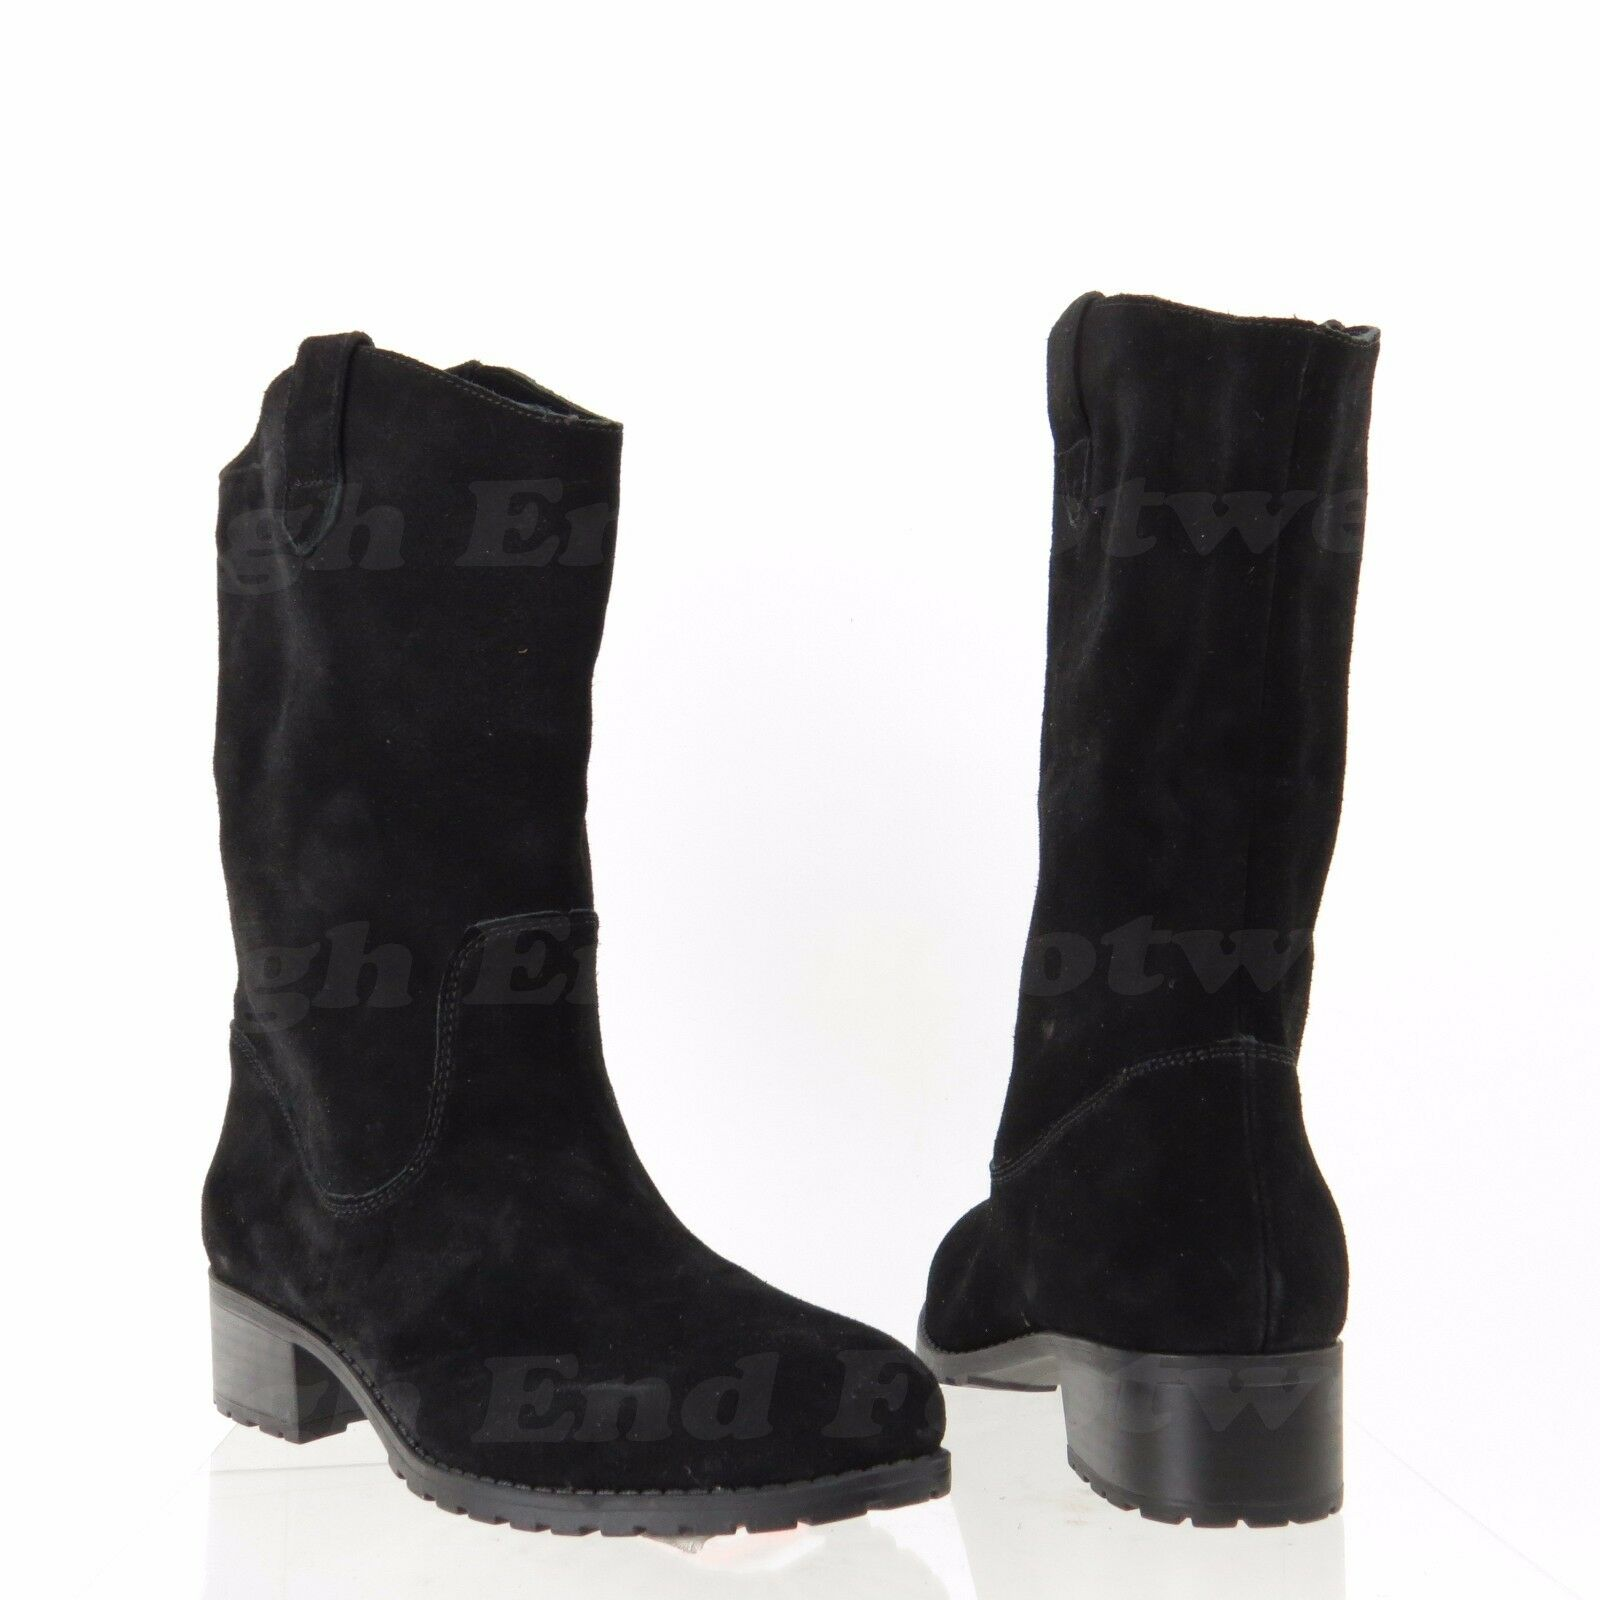 Charles David June Women's shoes Black Suede Pull Up Ankle Boots Size 6 M NEW